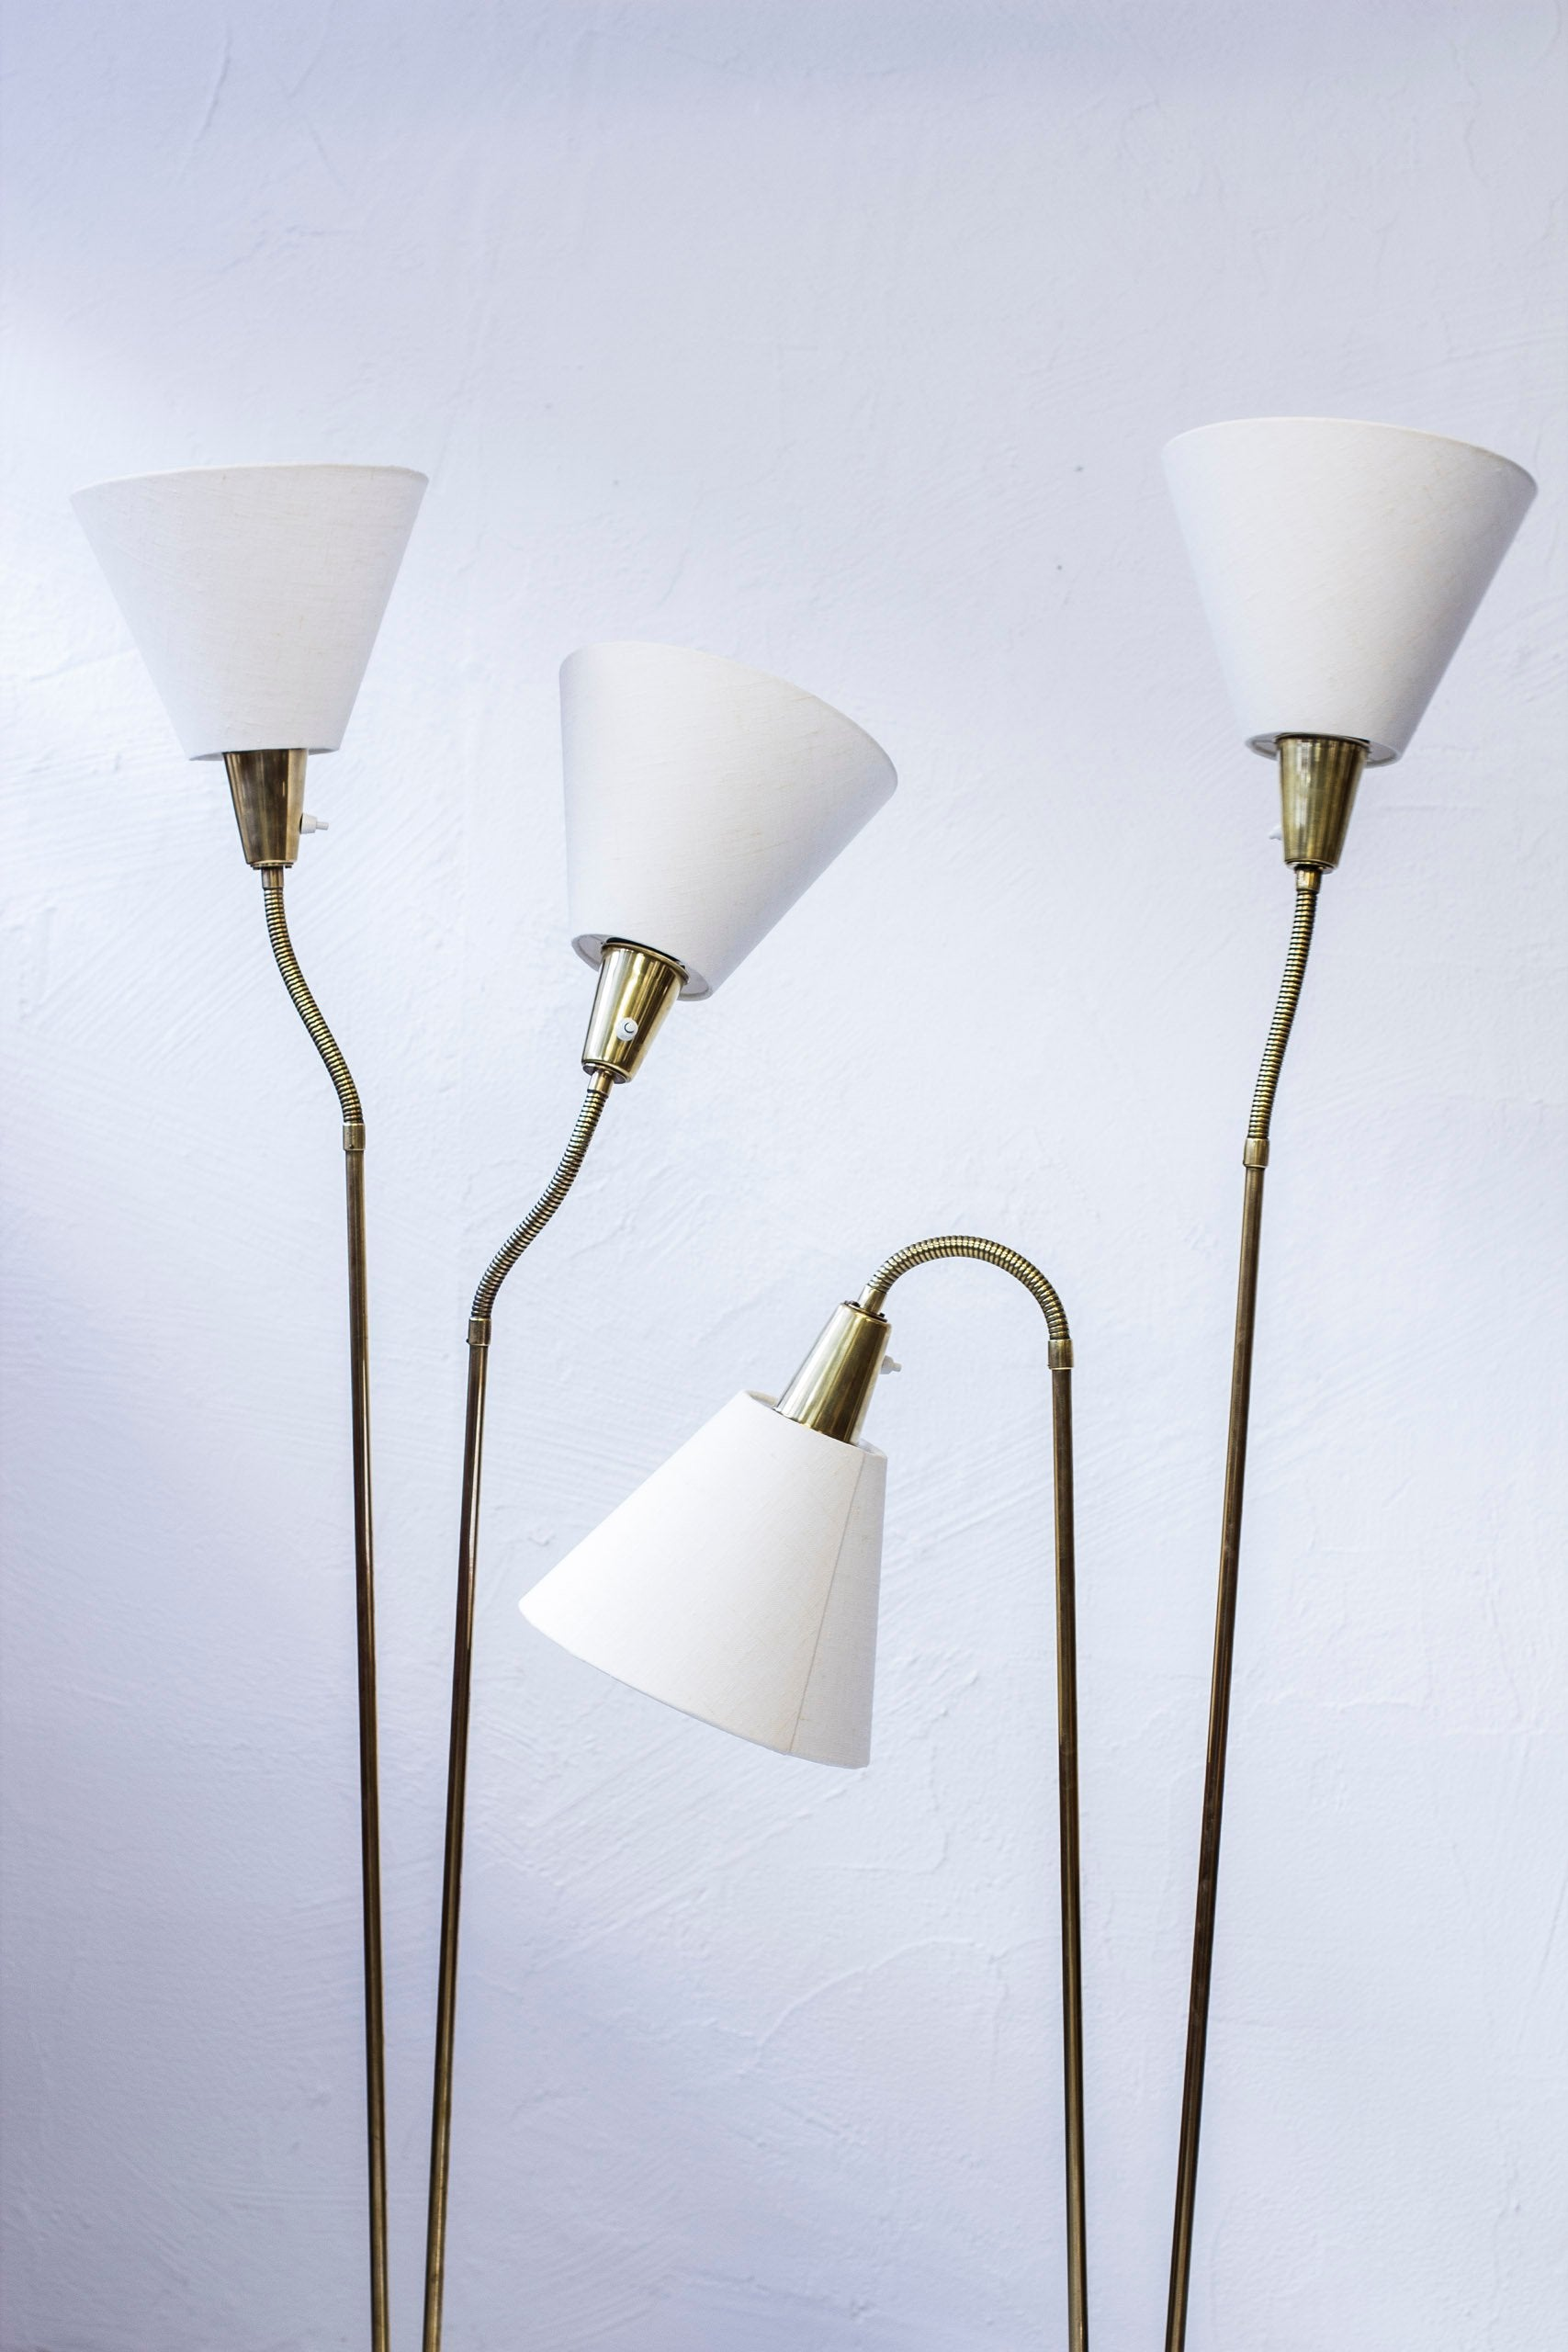 Pair of floor lamps by Sonja Katzin